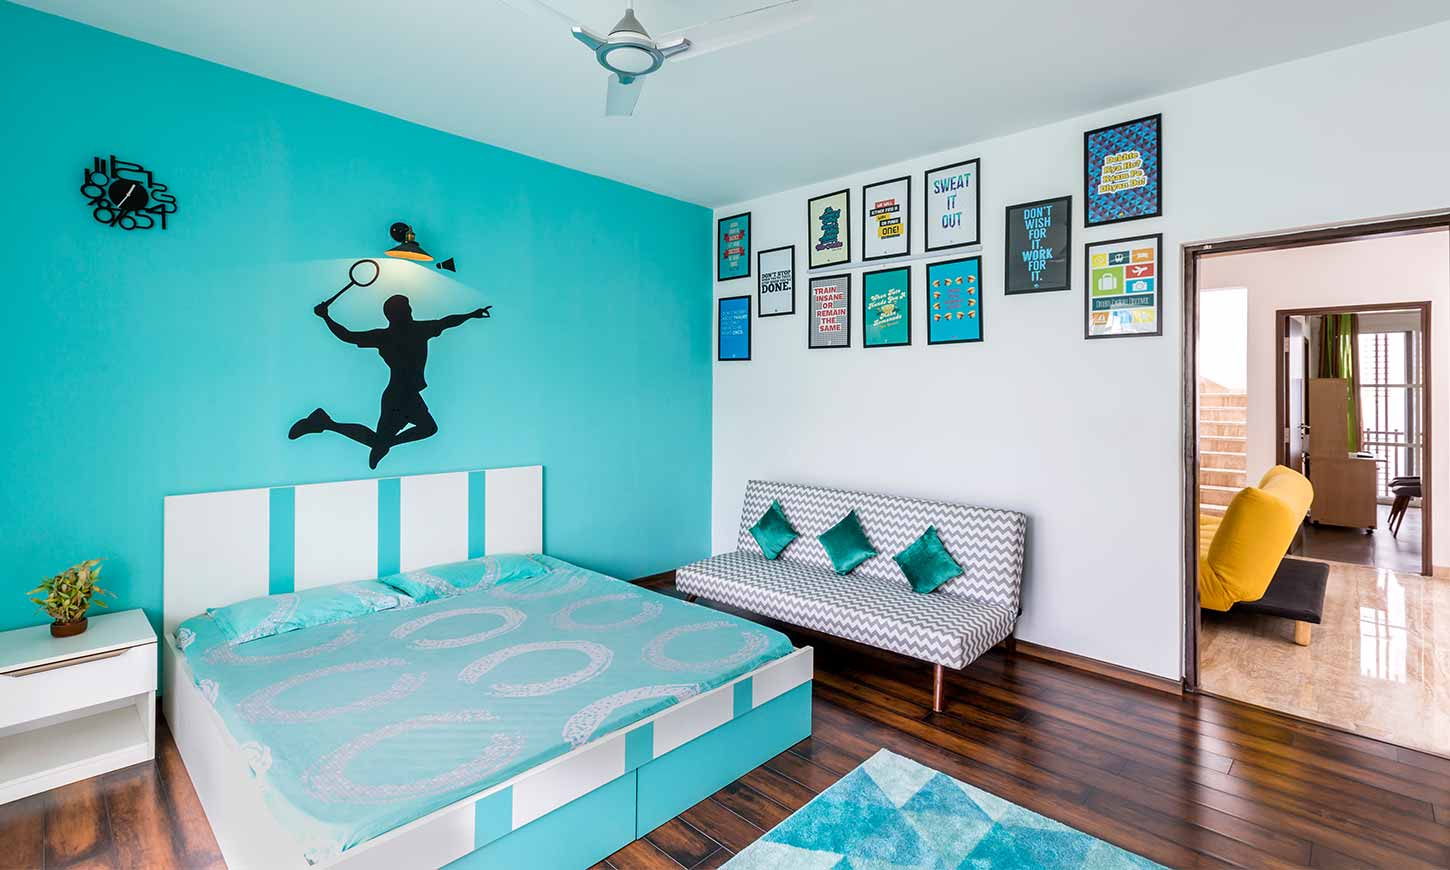 list of interior design companies in bangalore which design a bedroom as per your choice